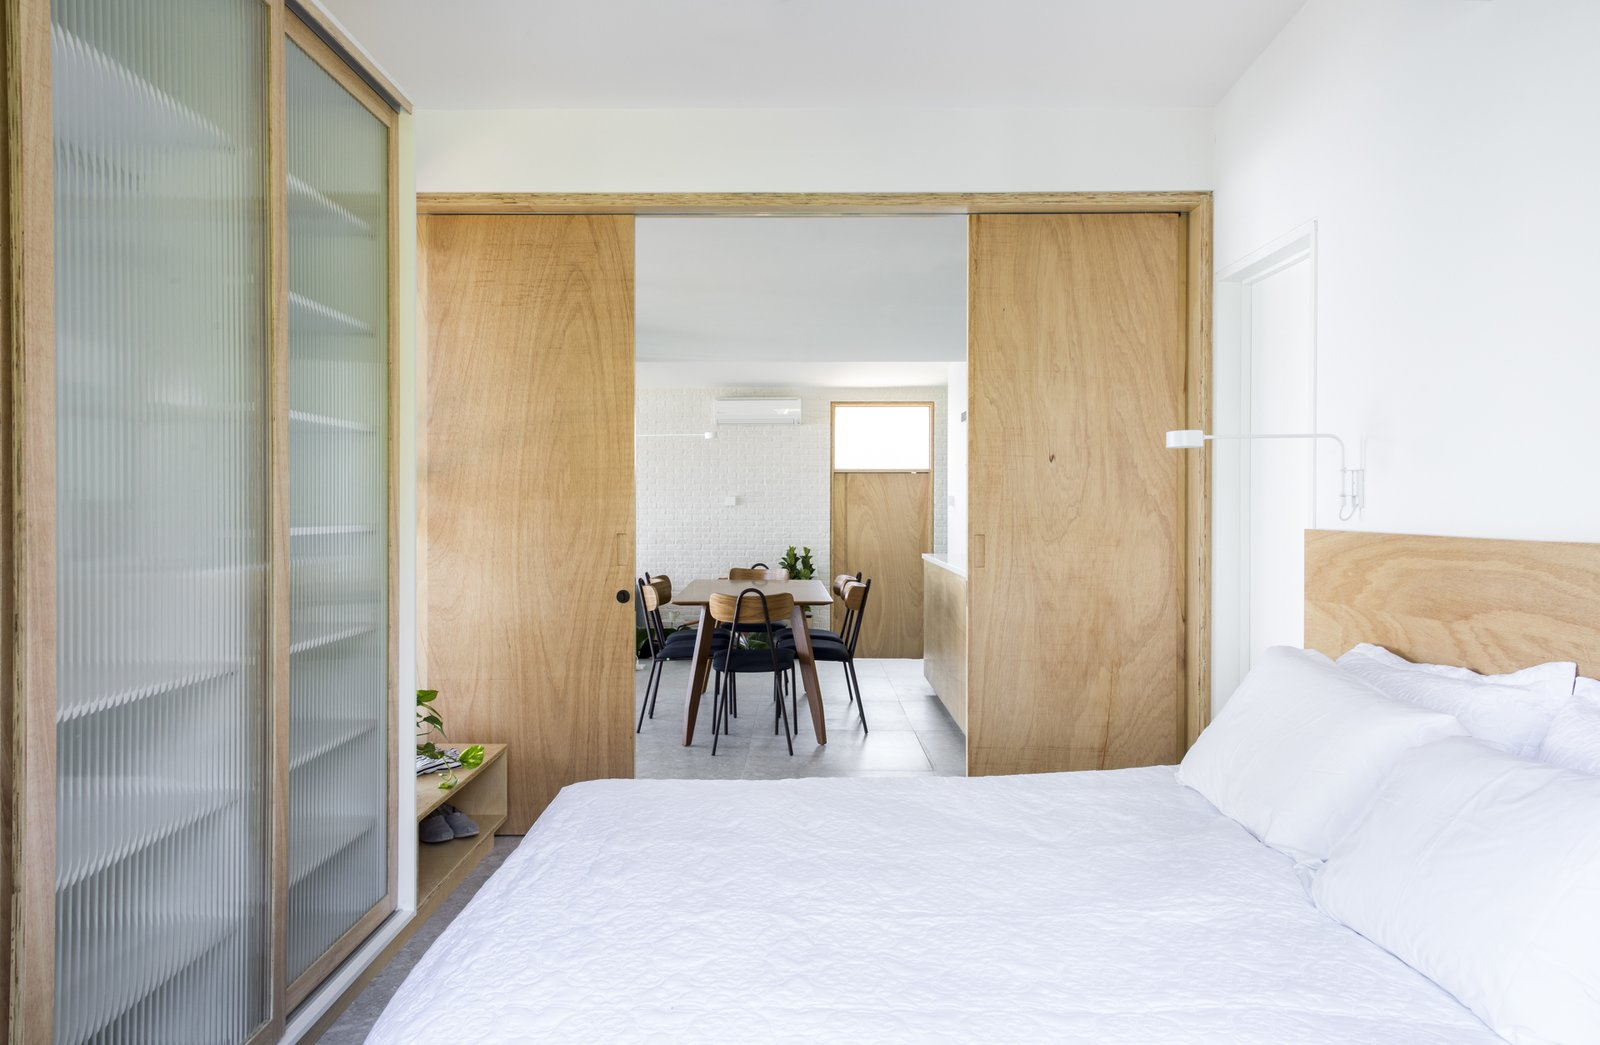 Bedroom, Bed, Porcelain Tile Floor, Ceiling Lighting, Floor Lighting, Wardrobe, Light Hardwood Floor, Wall Lighting, Dresser, and Bench designed by Estúdio Minke  Casa da Pedra (The stone house)